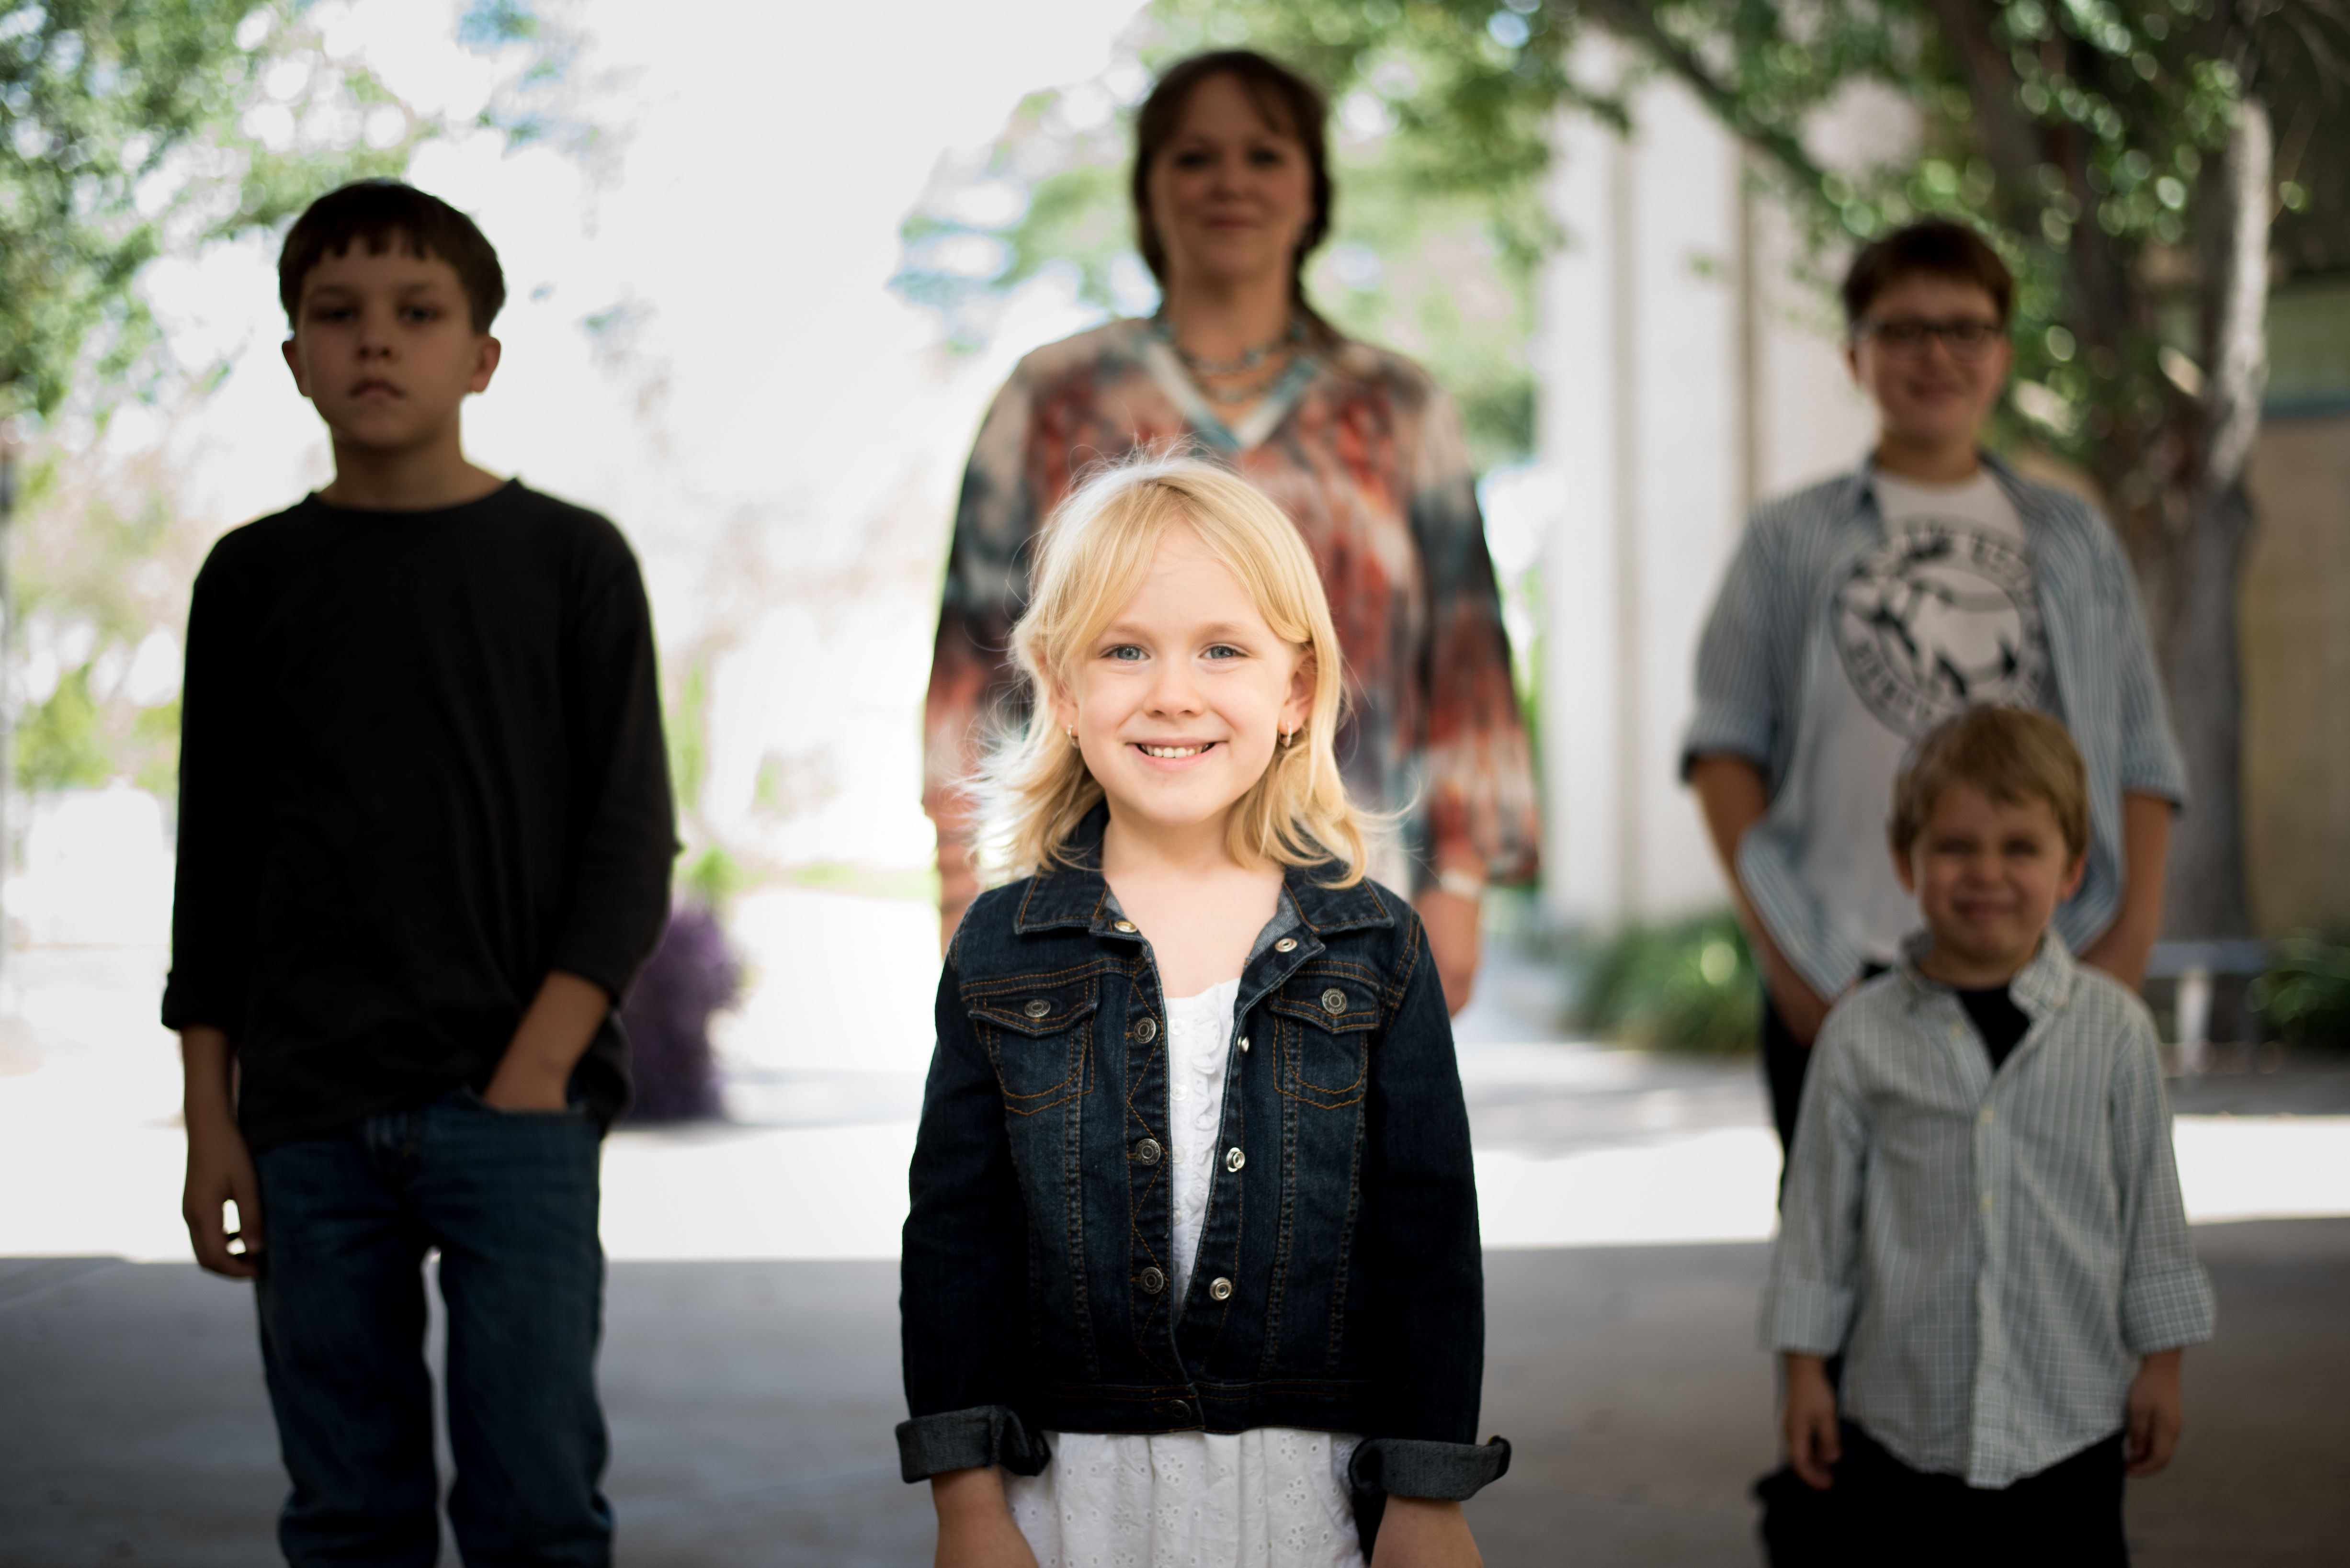 77bda44ab5f4 I Had 4 Boys Until One of Them Told Me She Was Really a Girl - I ...